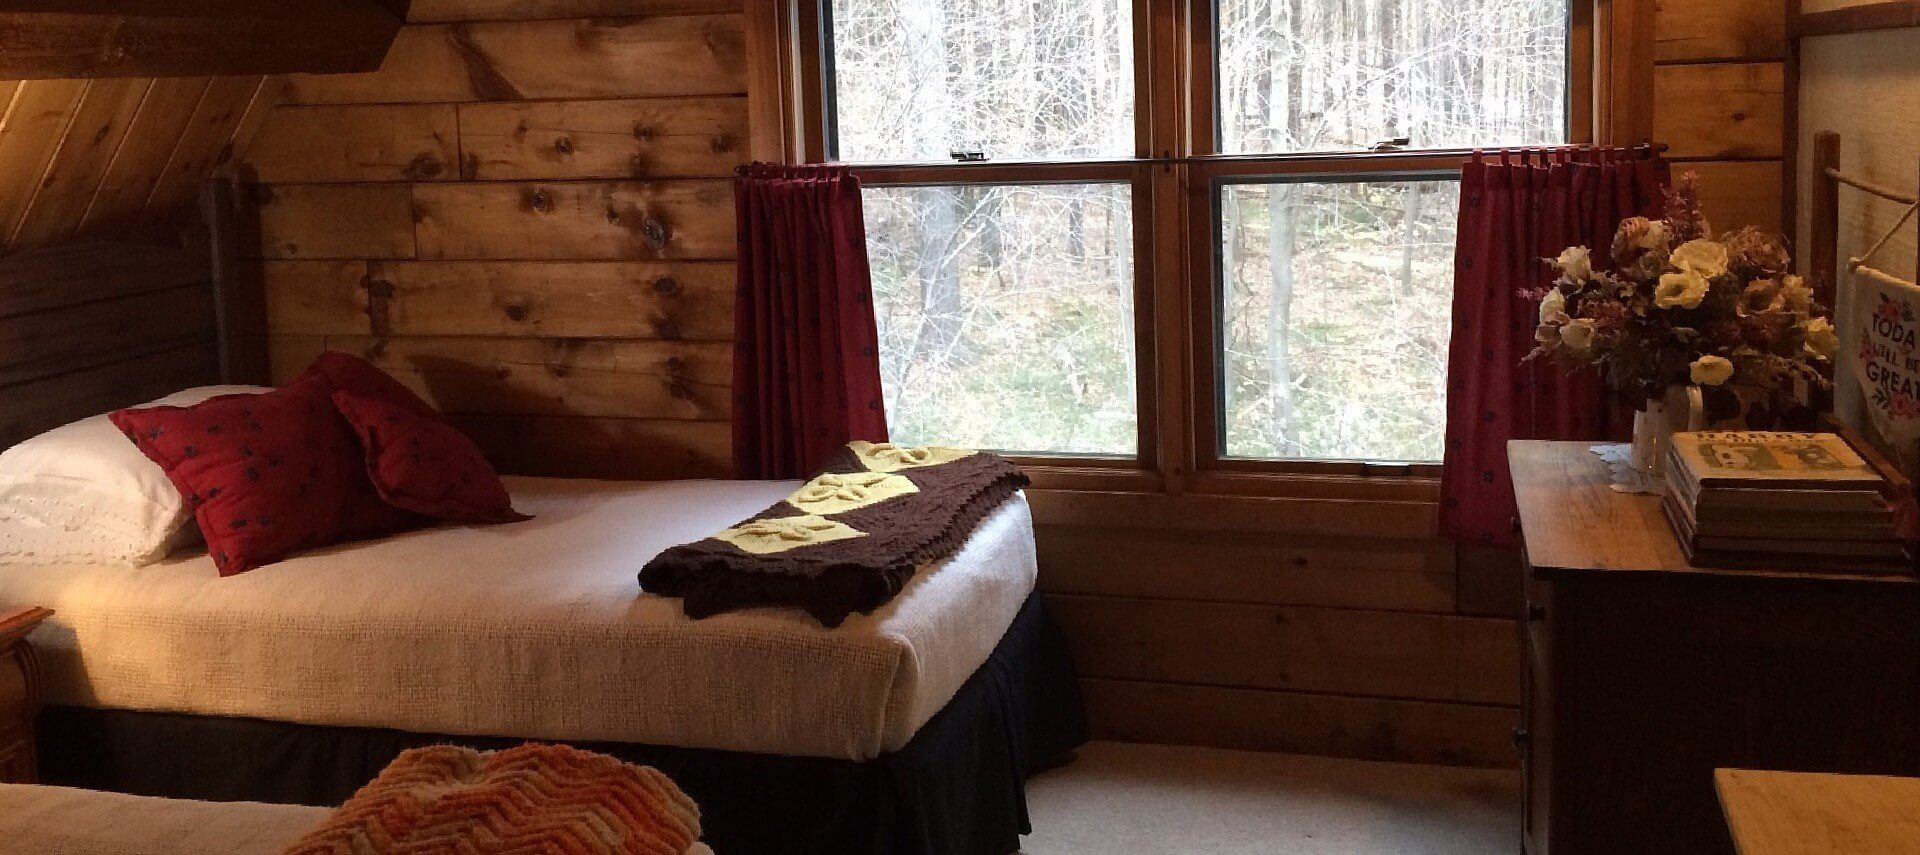 Twin bed with white quilt and red pillows underneath a large window with red curtains and views into a wooded area